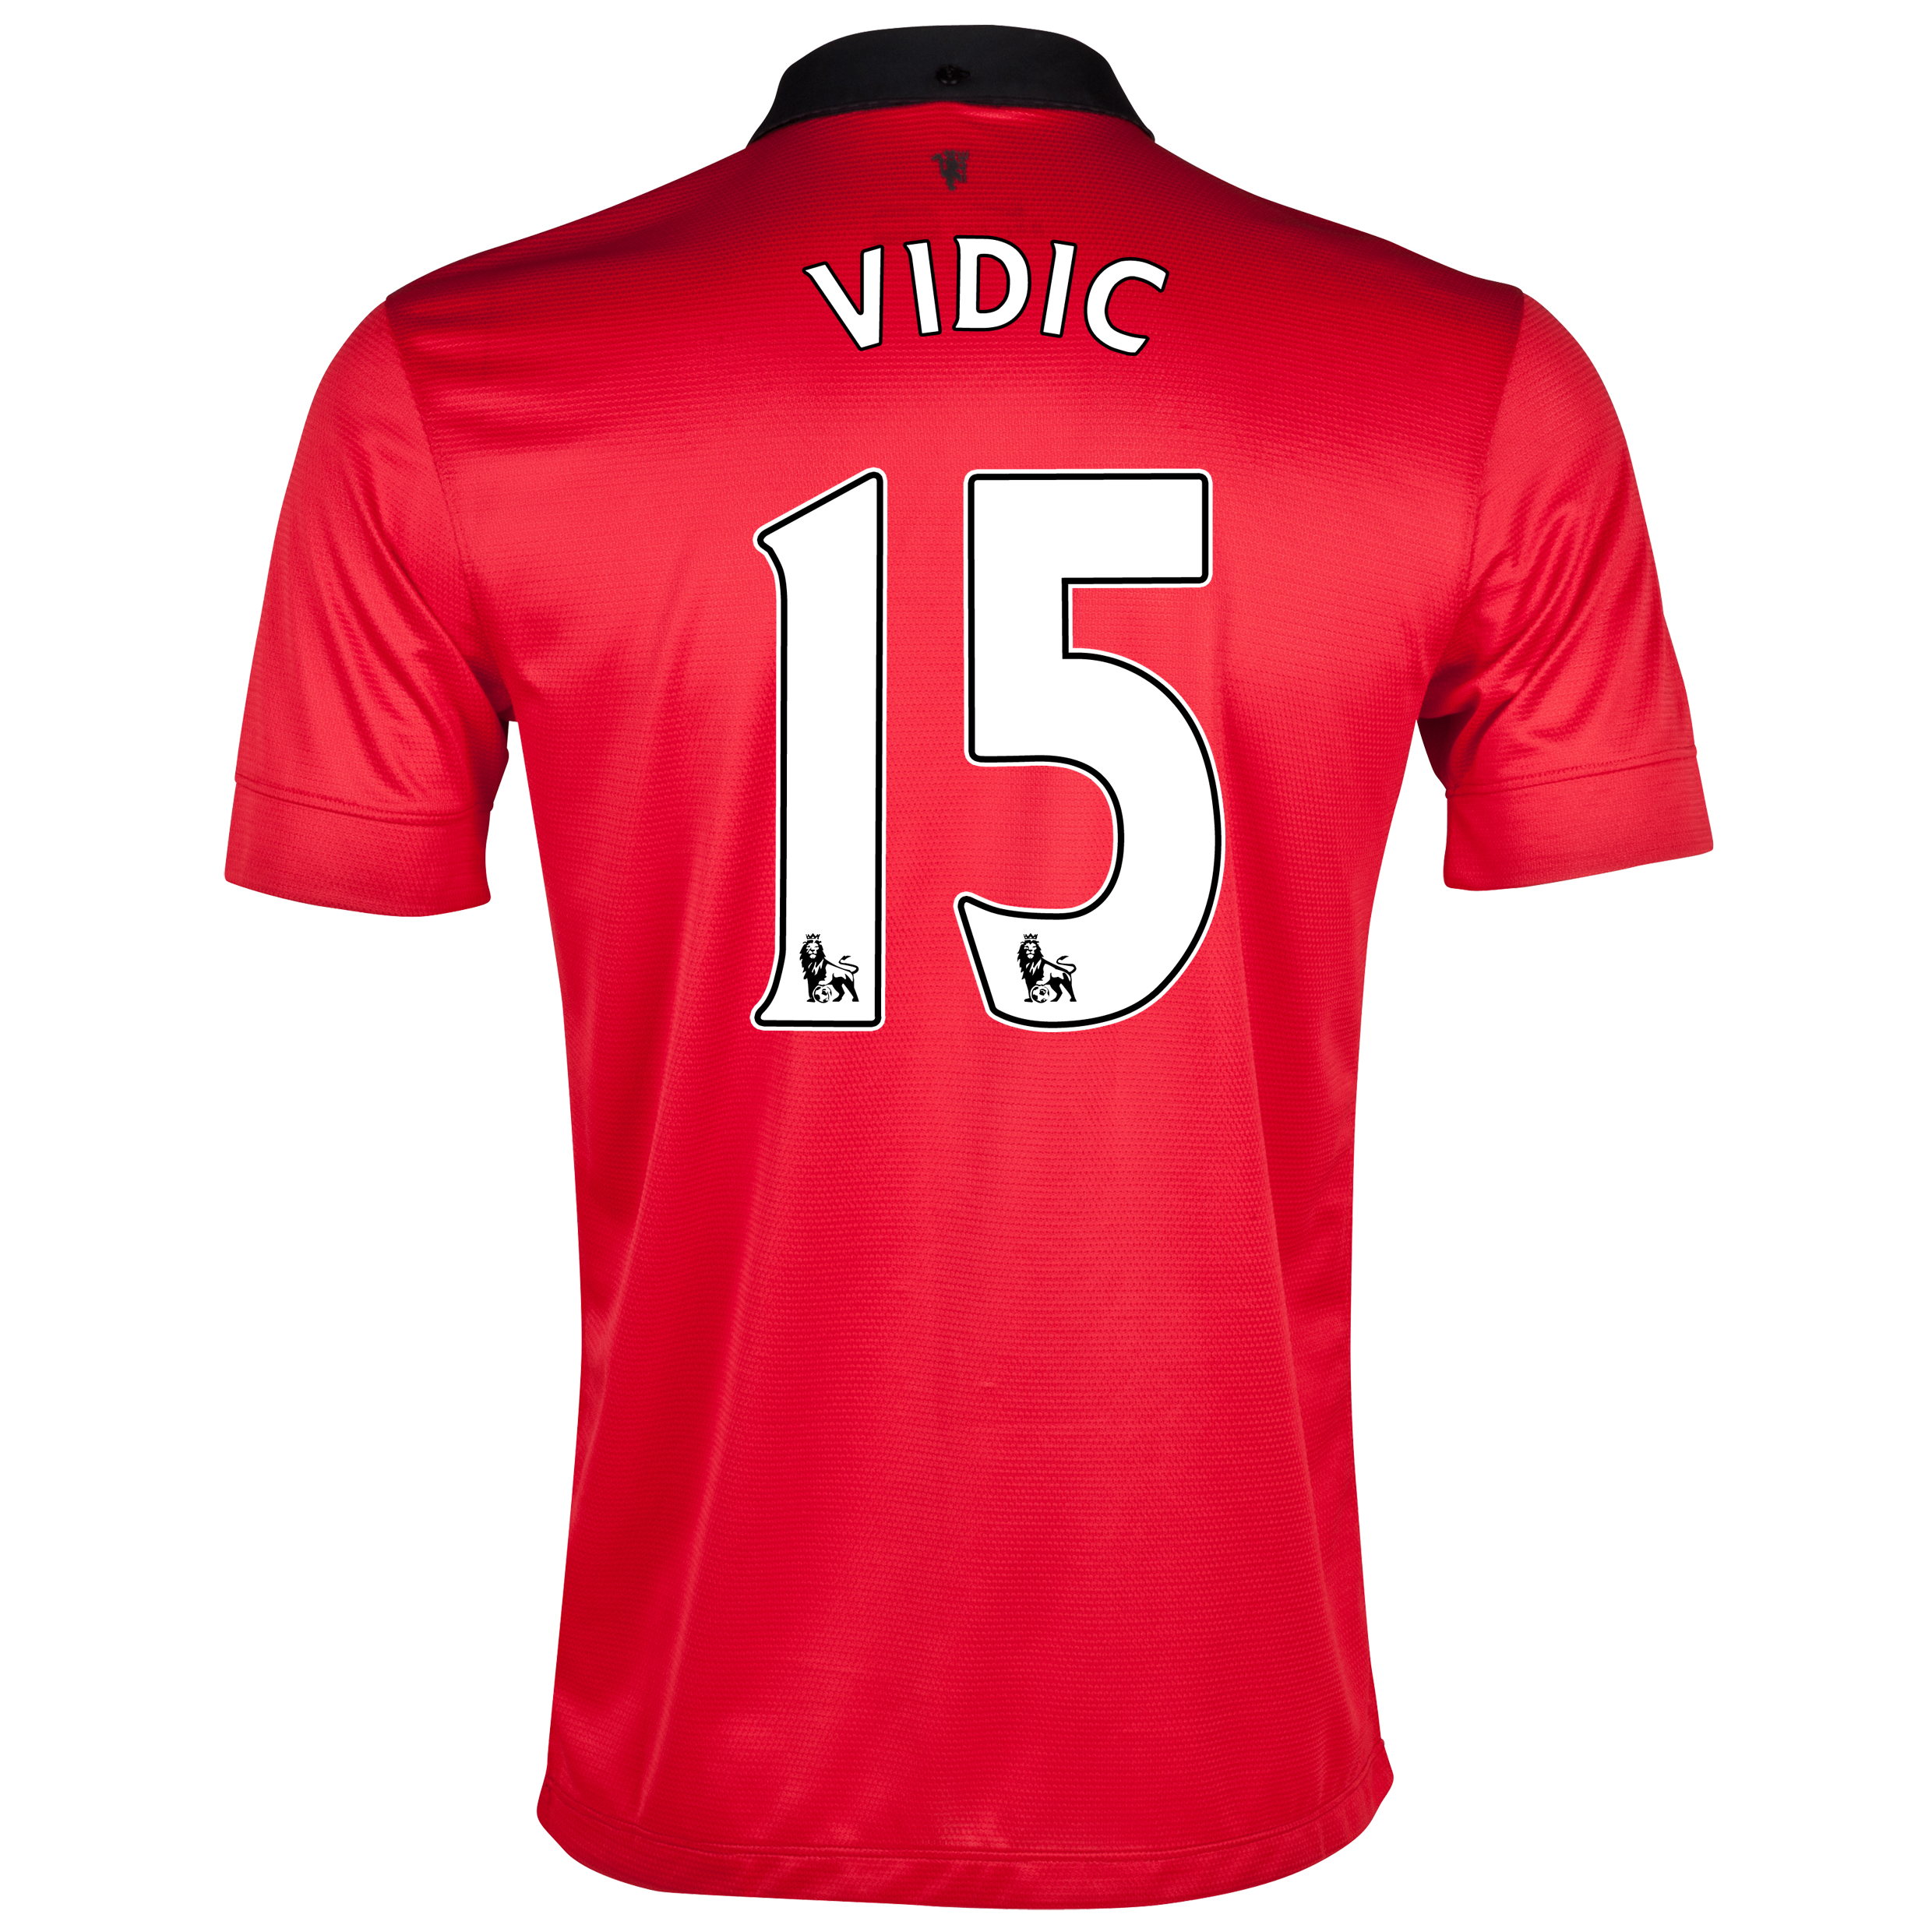 Manchester United Home Shirt 2013/14 with Vidic 15 printing